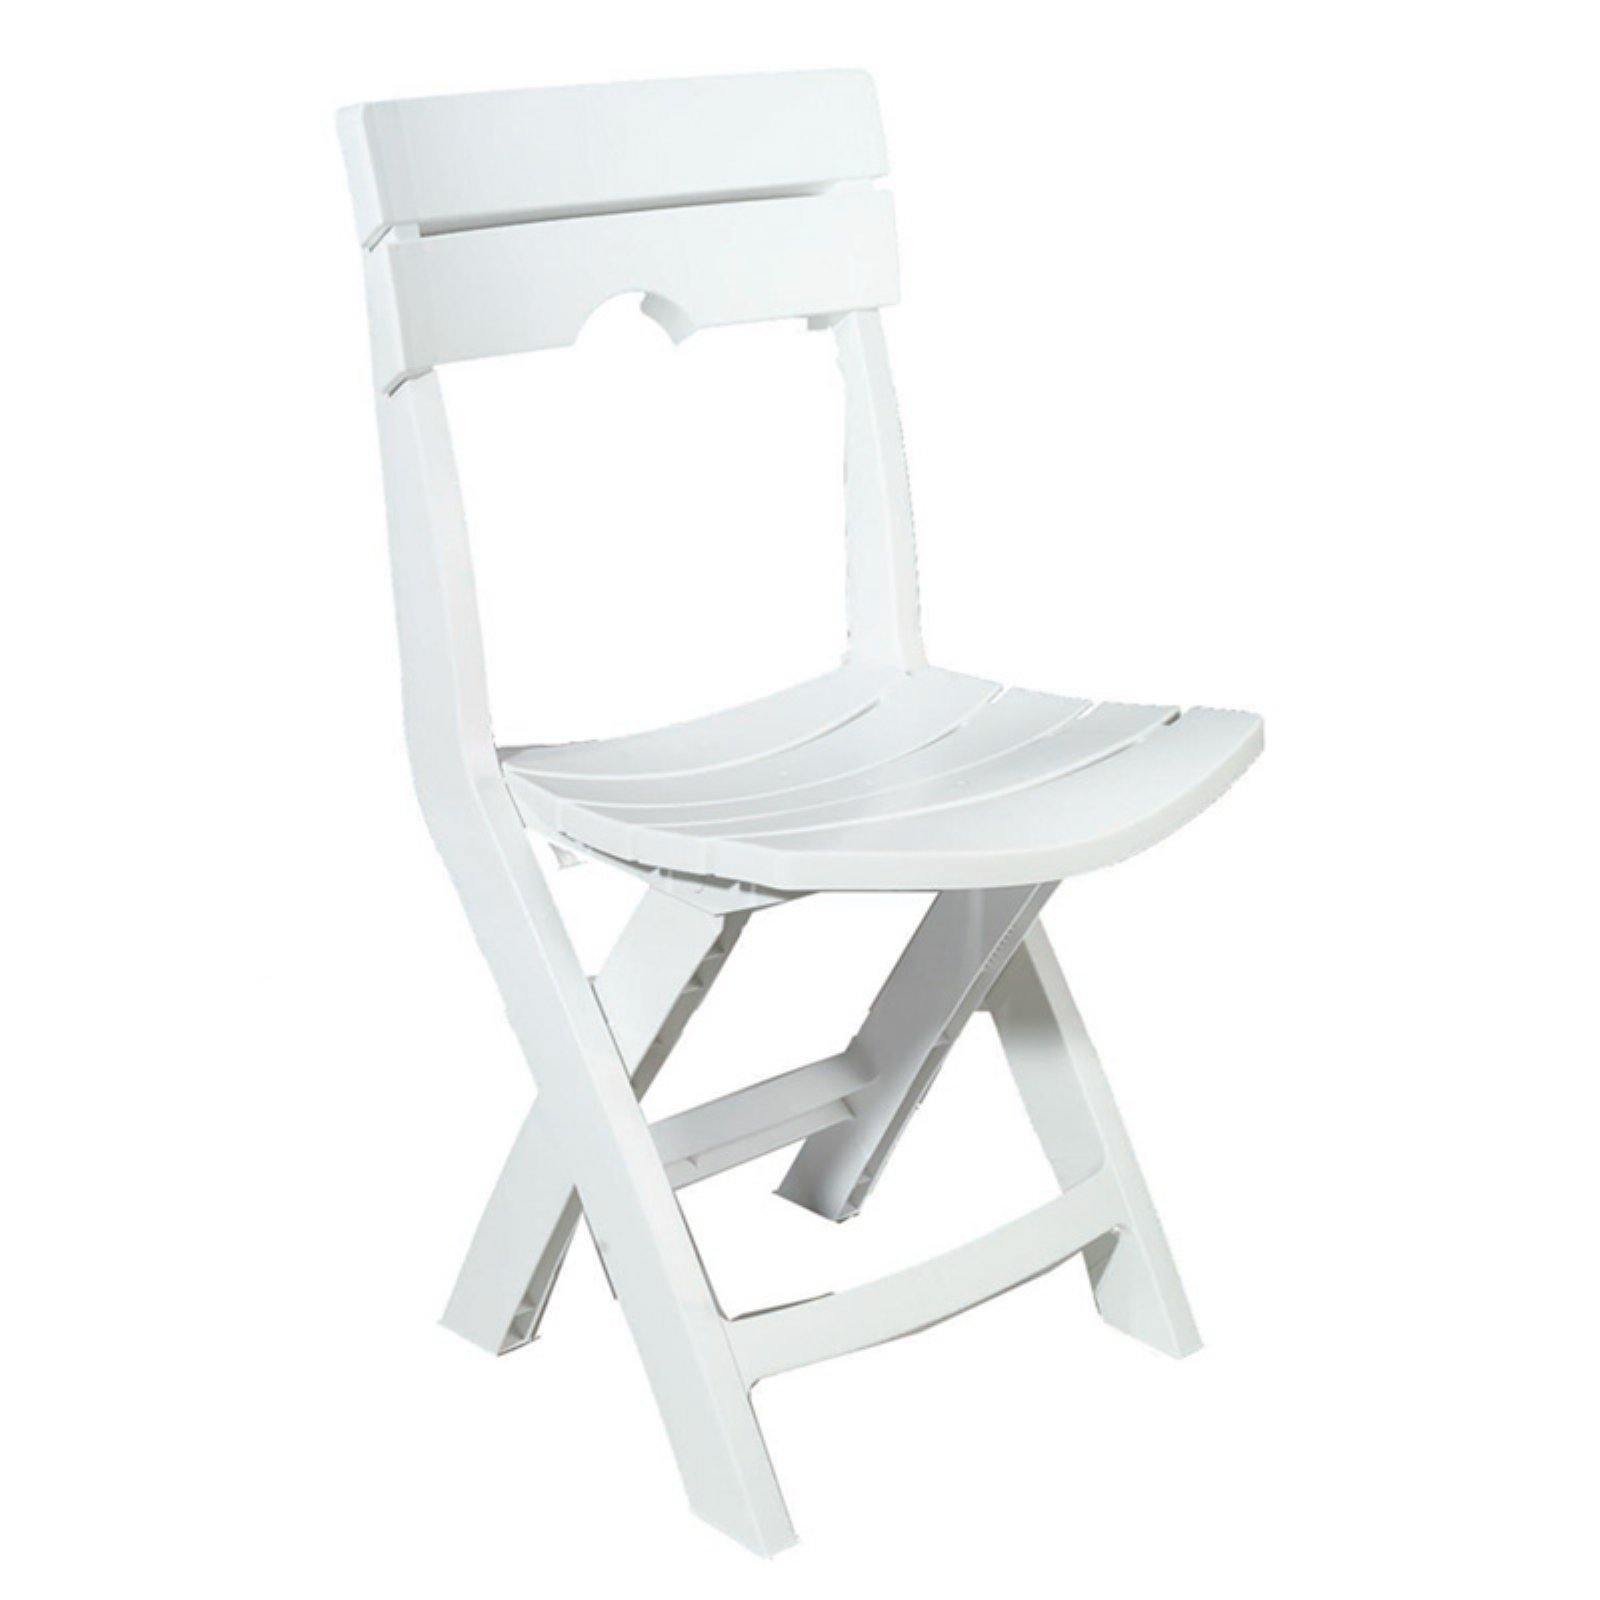 Adams Manufacturing Quik-Fold Chair, White